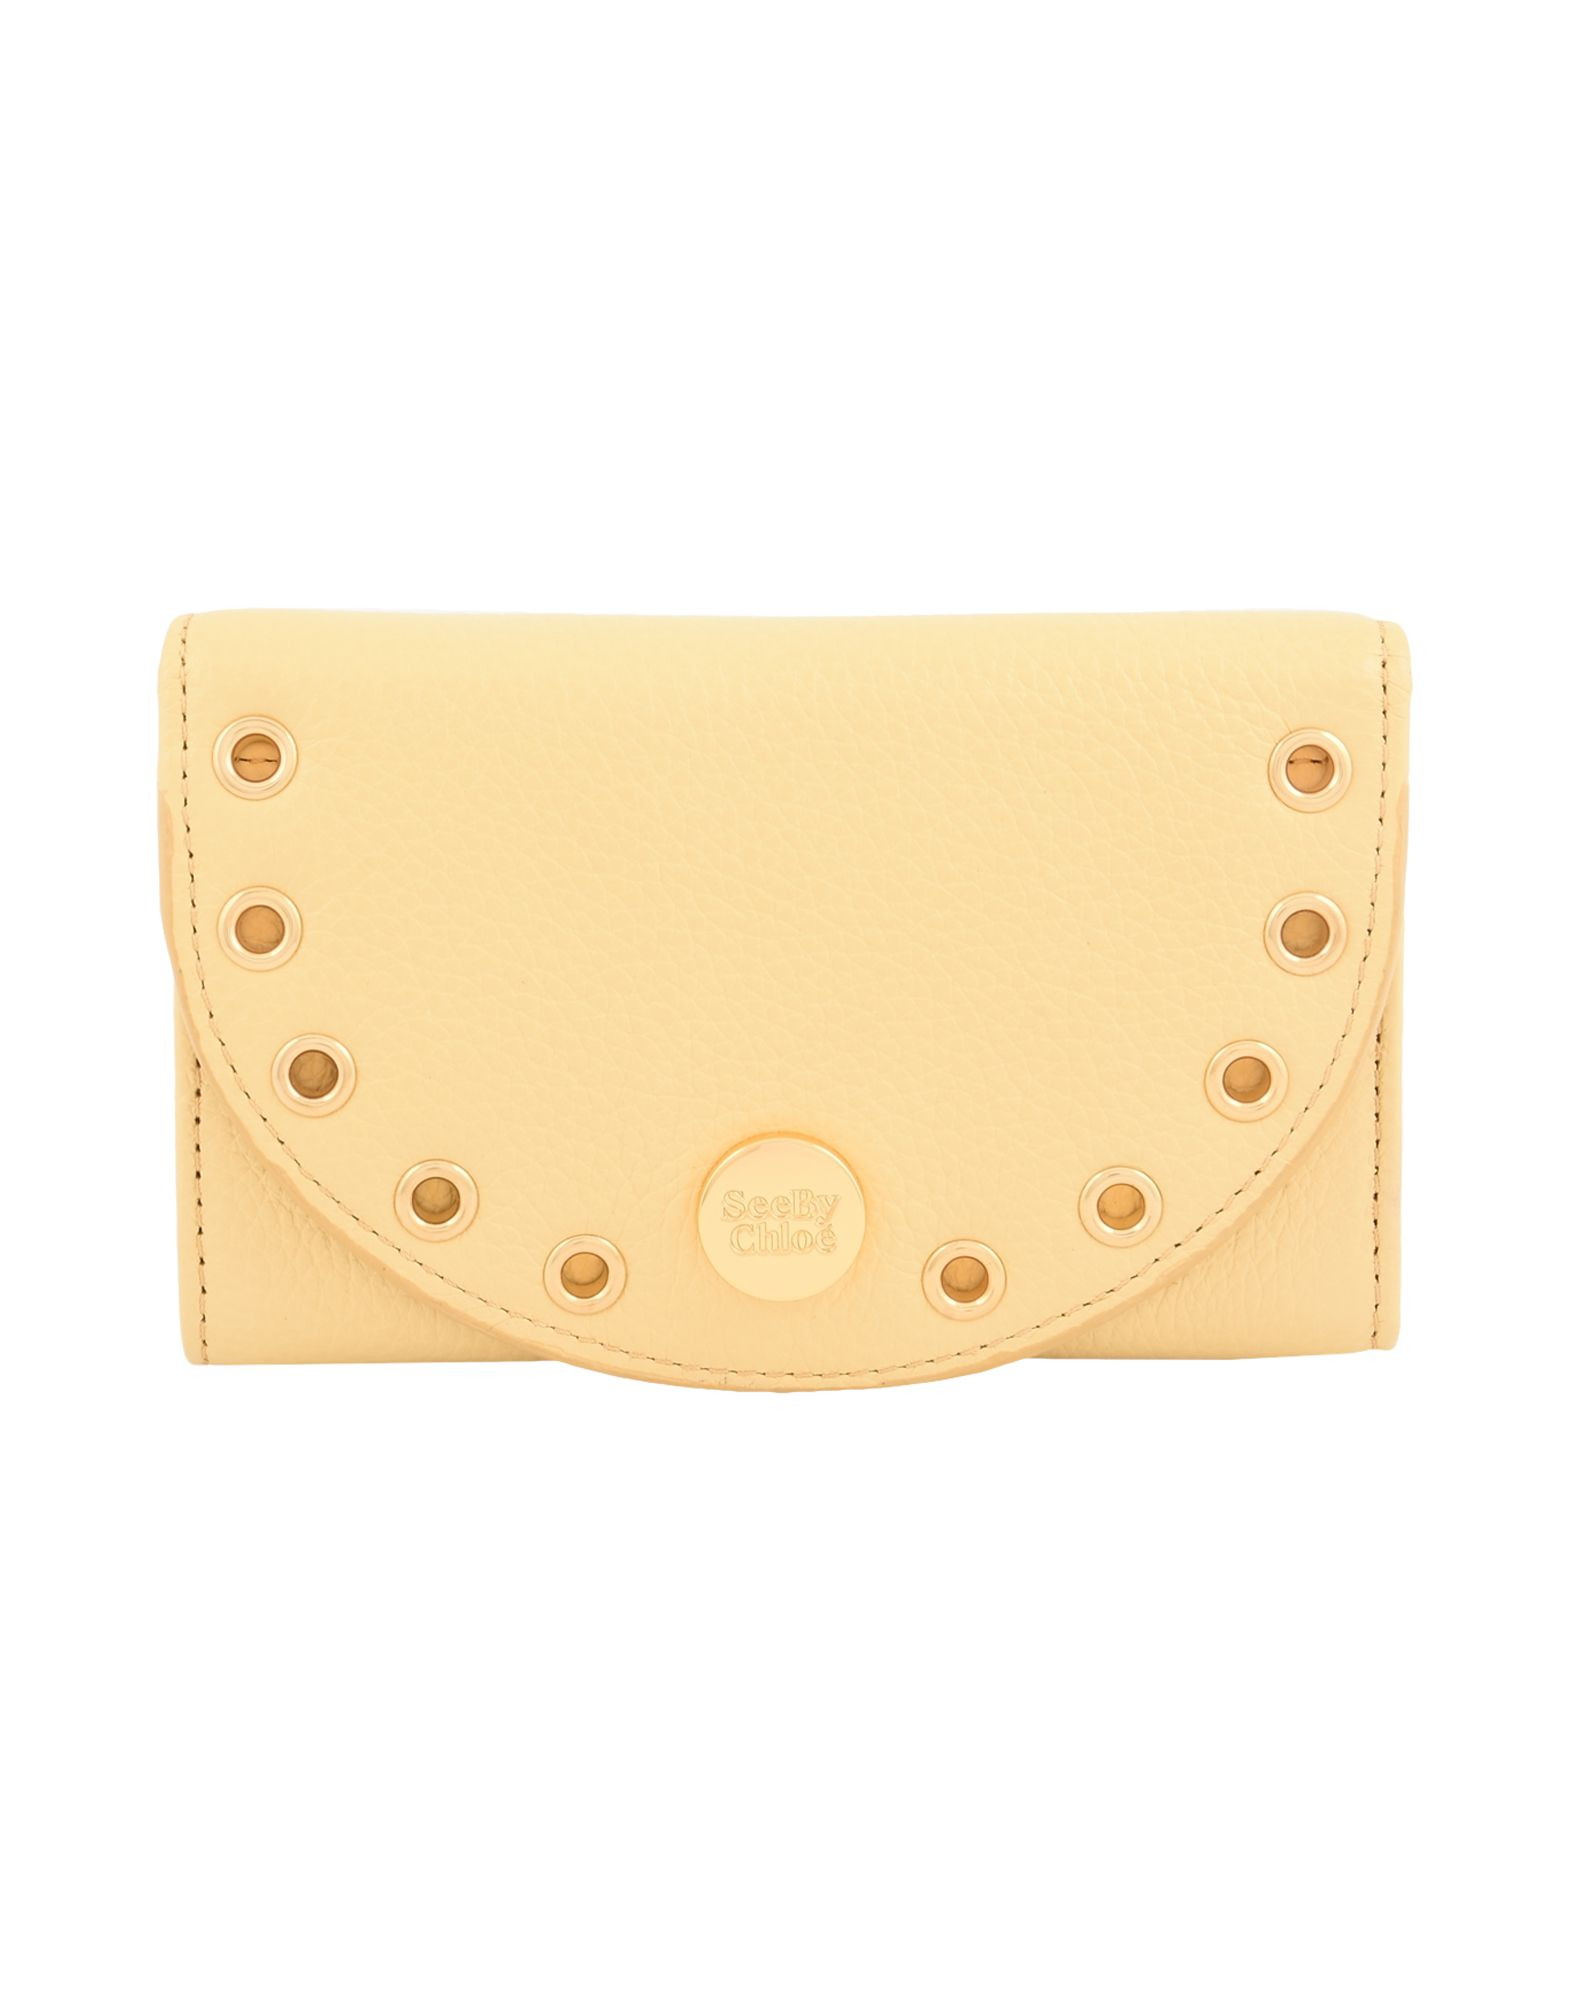 レディース SEE BY CHLO KRISS MEDIUM WALLET 財布  イエロー